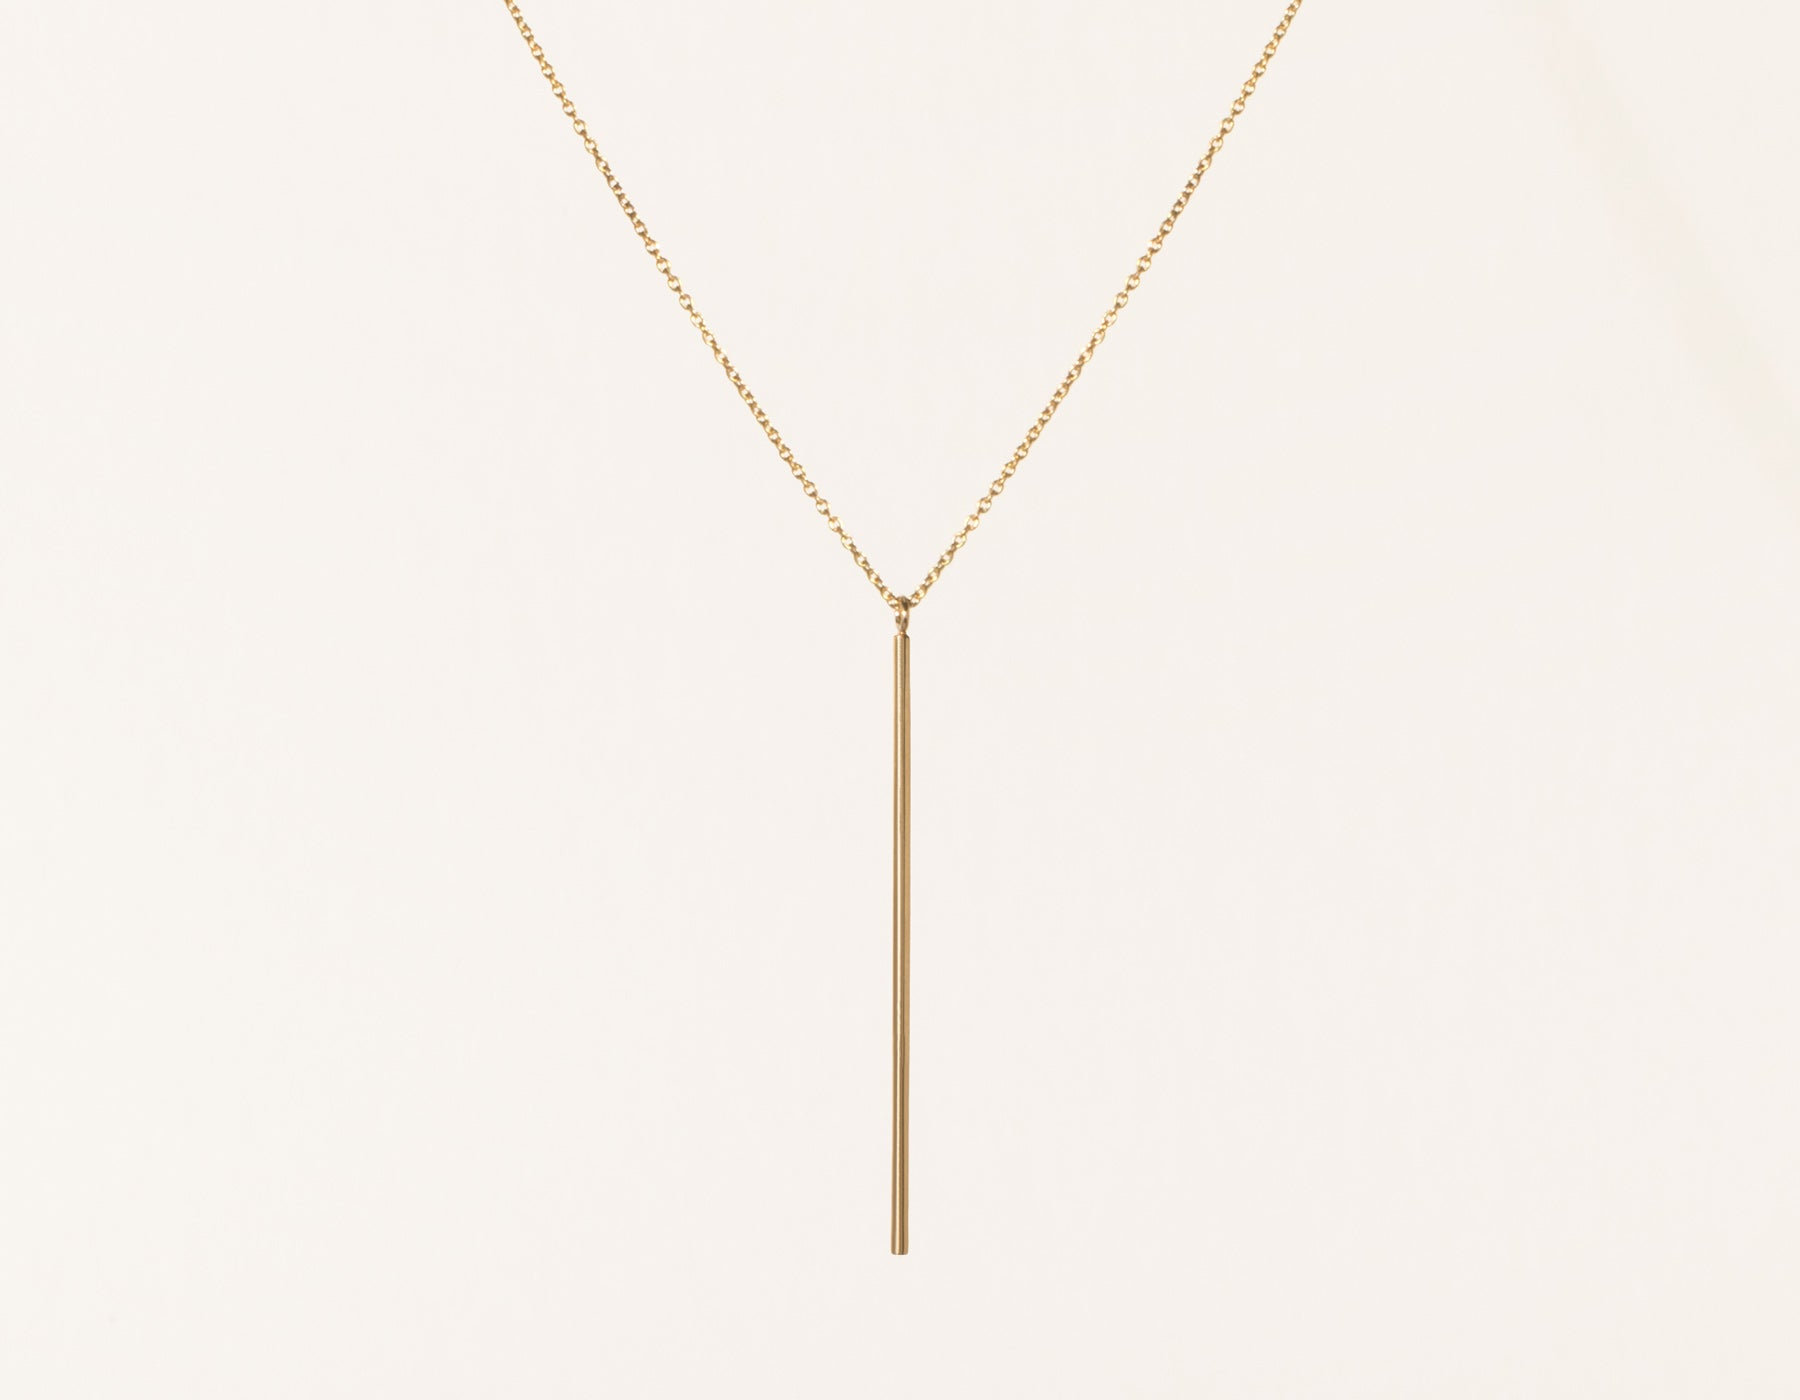 ef vertical necklace jewelry collection product gold diamond lyst in pendant goldclear gallery normal bar clear